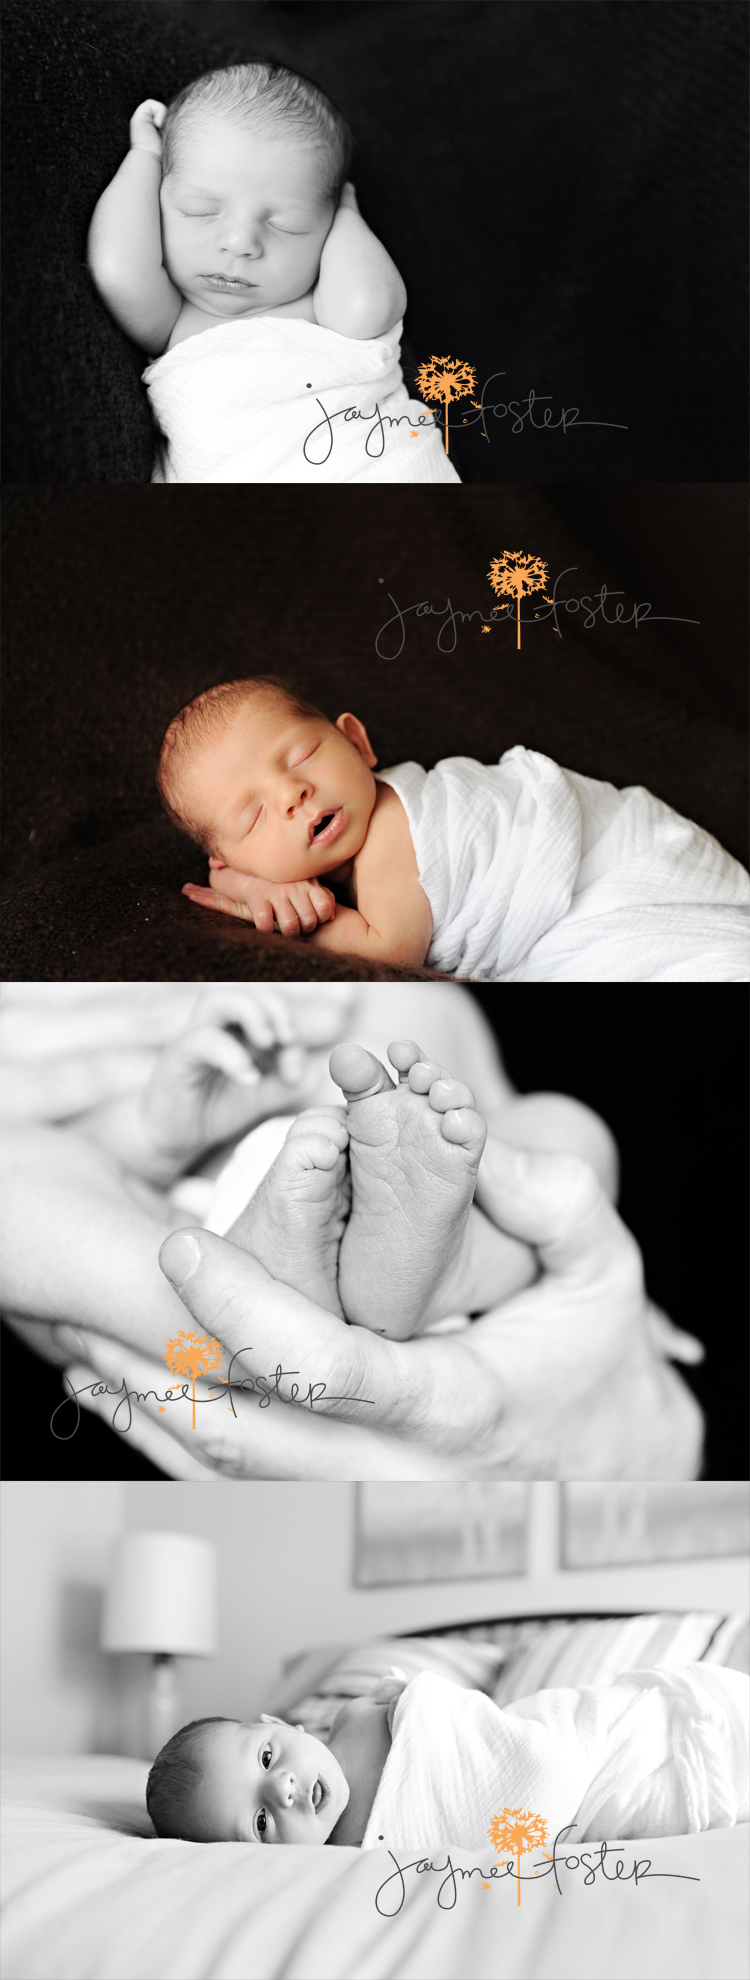 Billings baby photographer 1